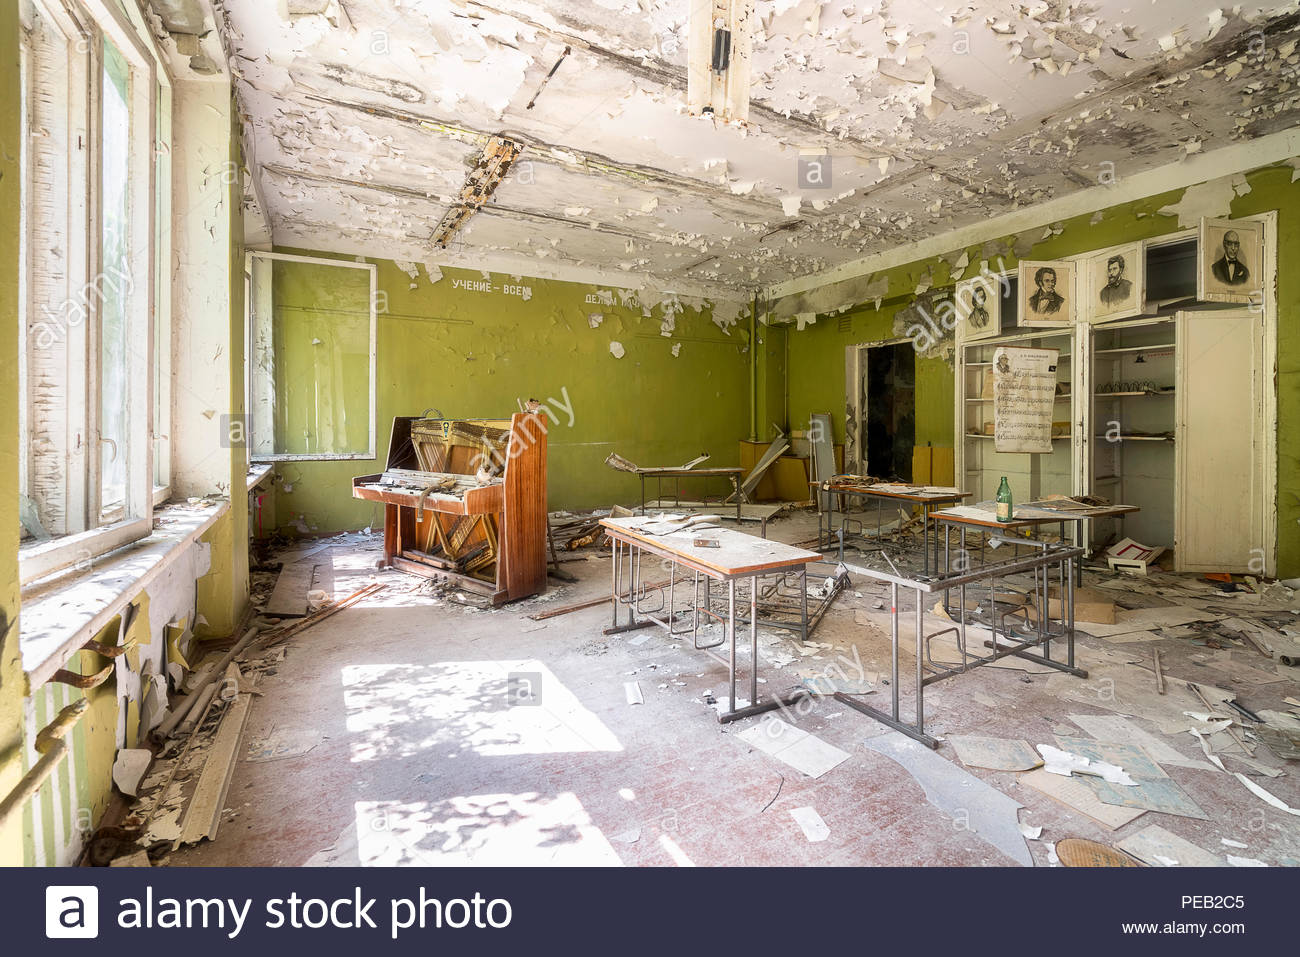 Photo taken in the abandoned city of Pripyat (Chernobyl) or the area of the Duga-3 radar, after the nuclear disaster. - Stock Image